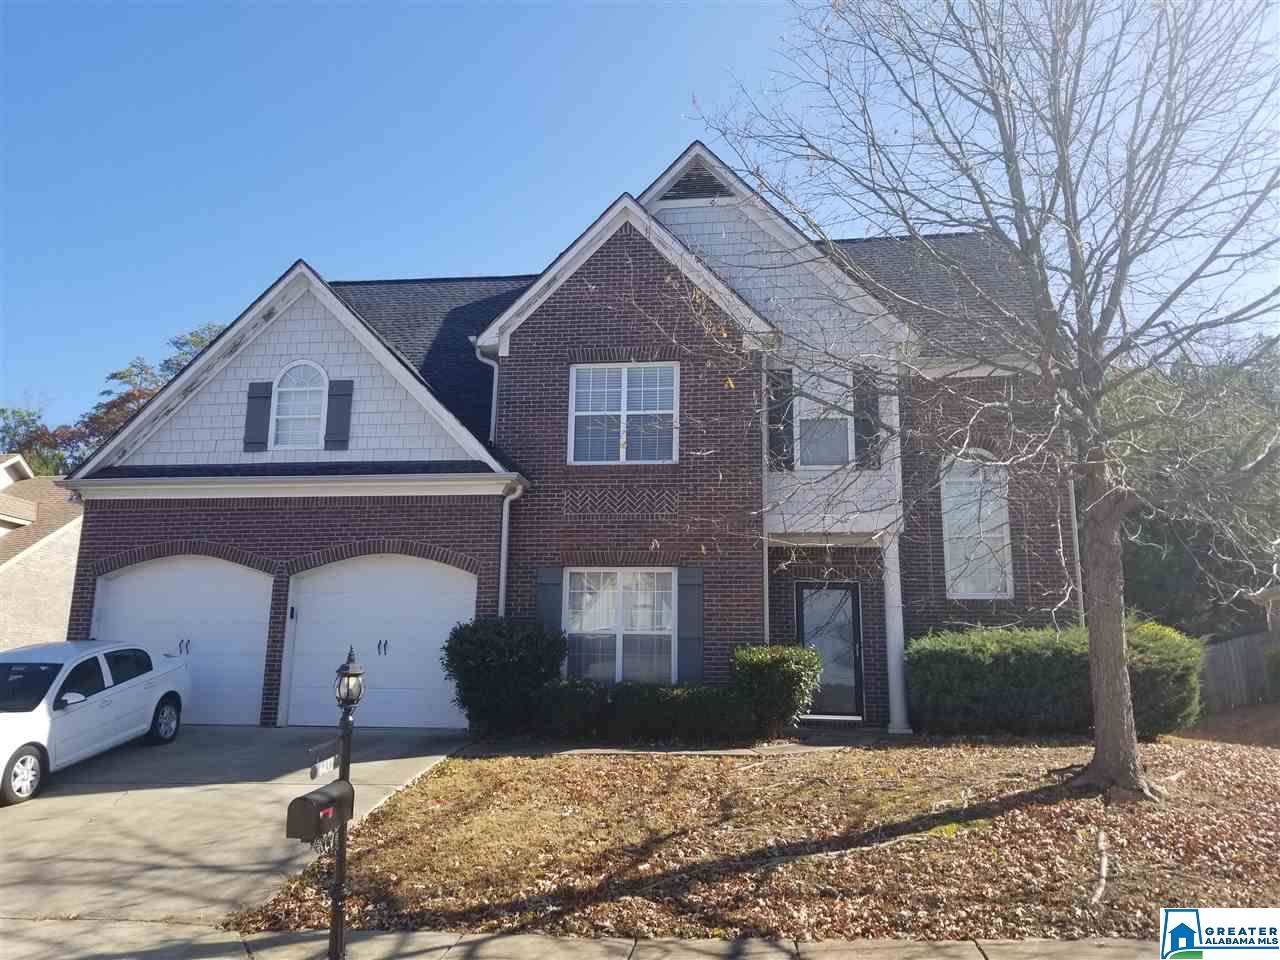 6432 Ridge View Cir - Photo 1